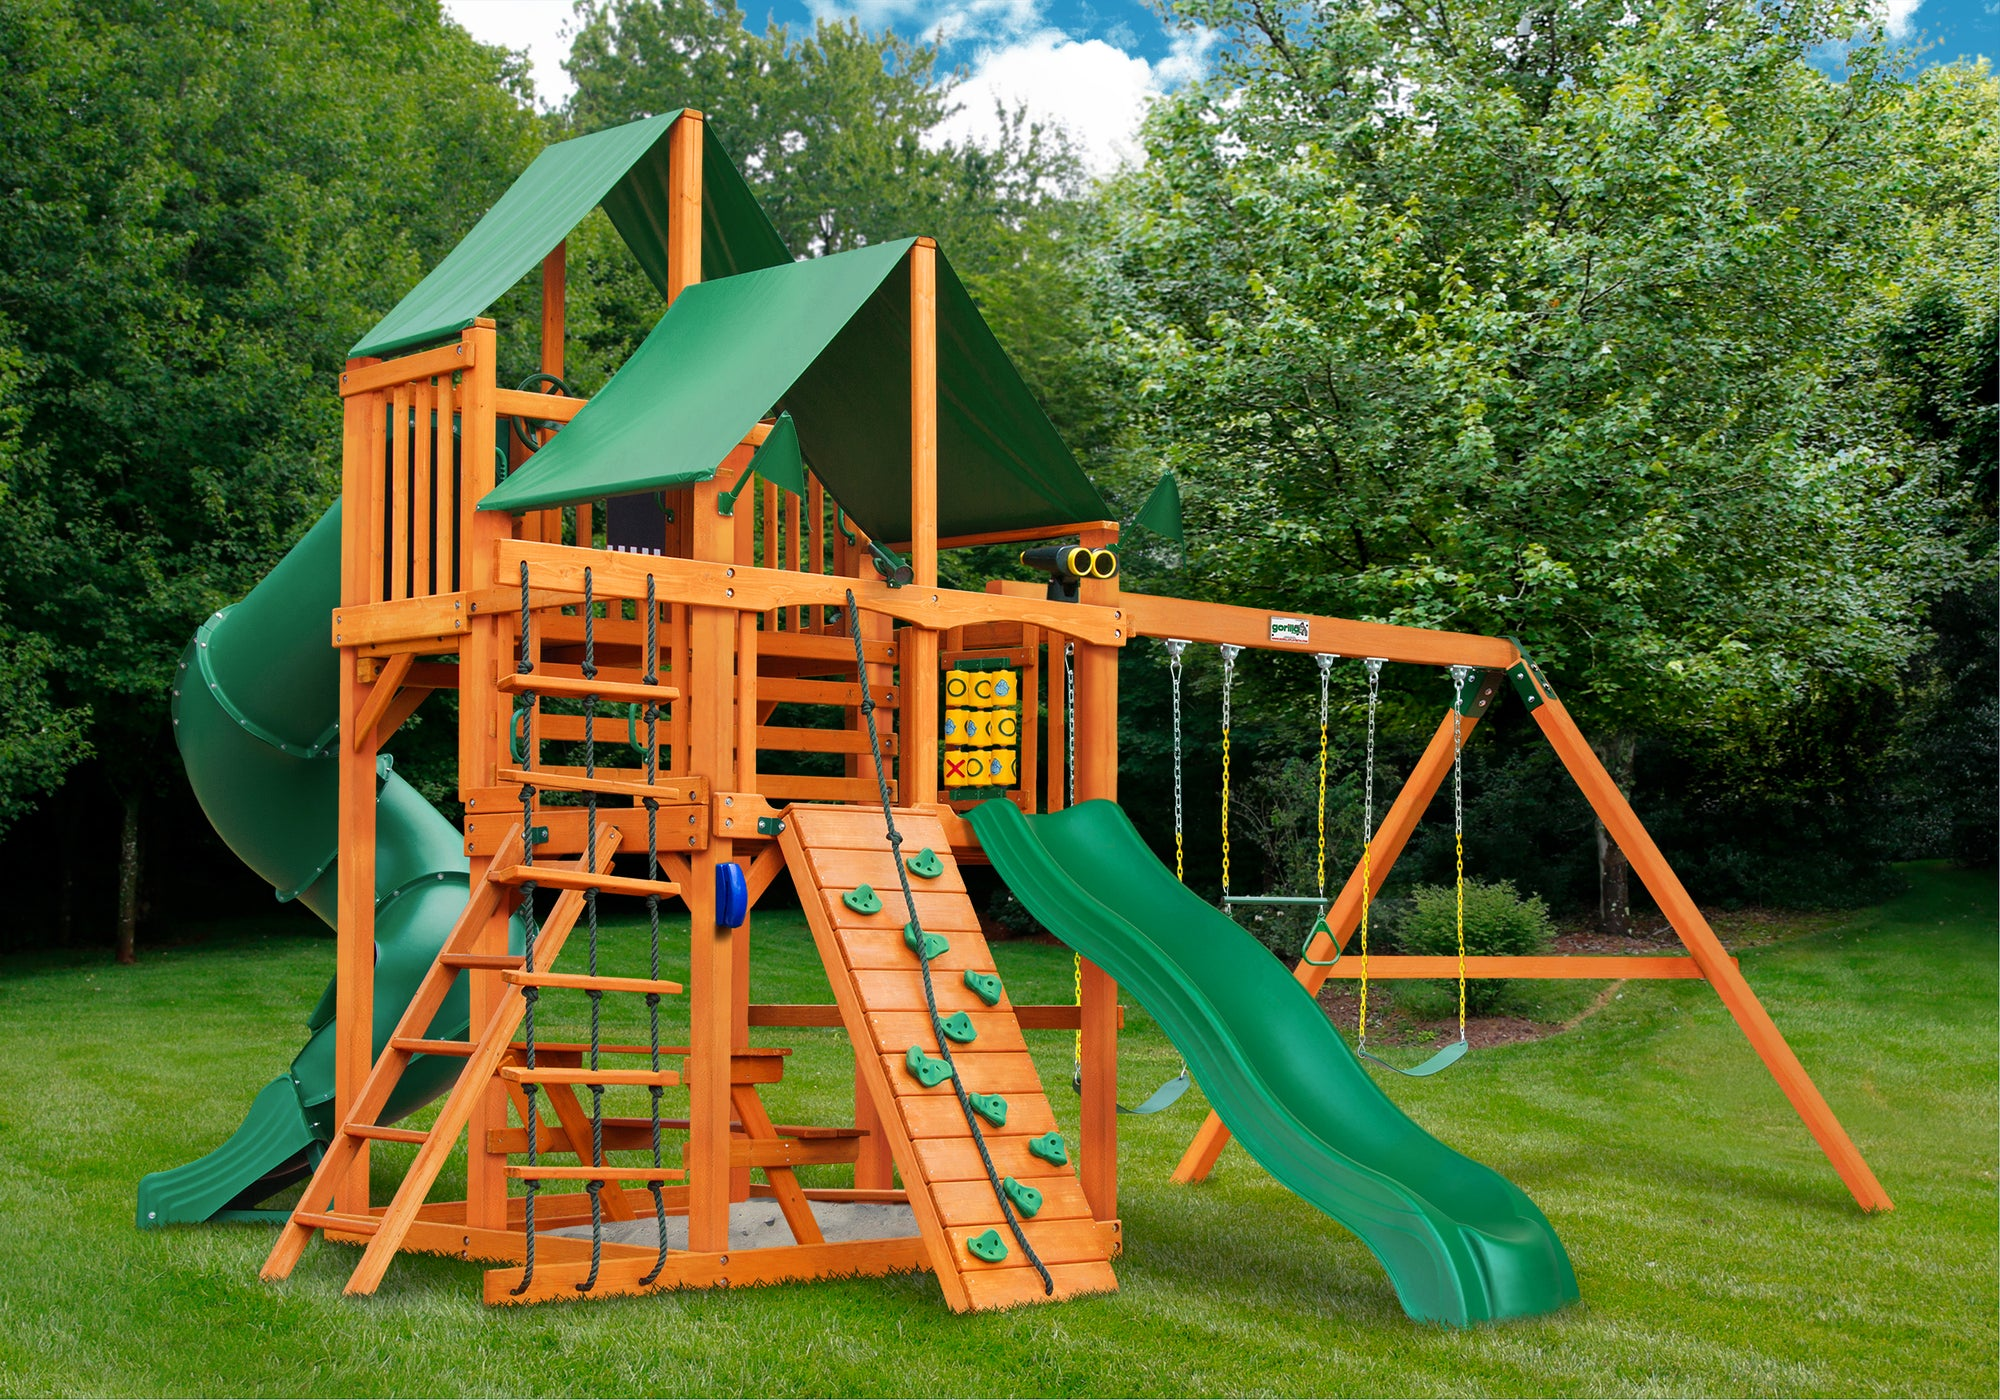 Gorilla Playsets Great Skye I Deluxe Green Vinyl Canopy Swing Set - Swing Set Paradise